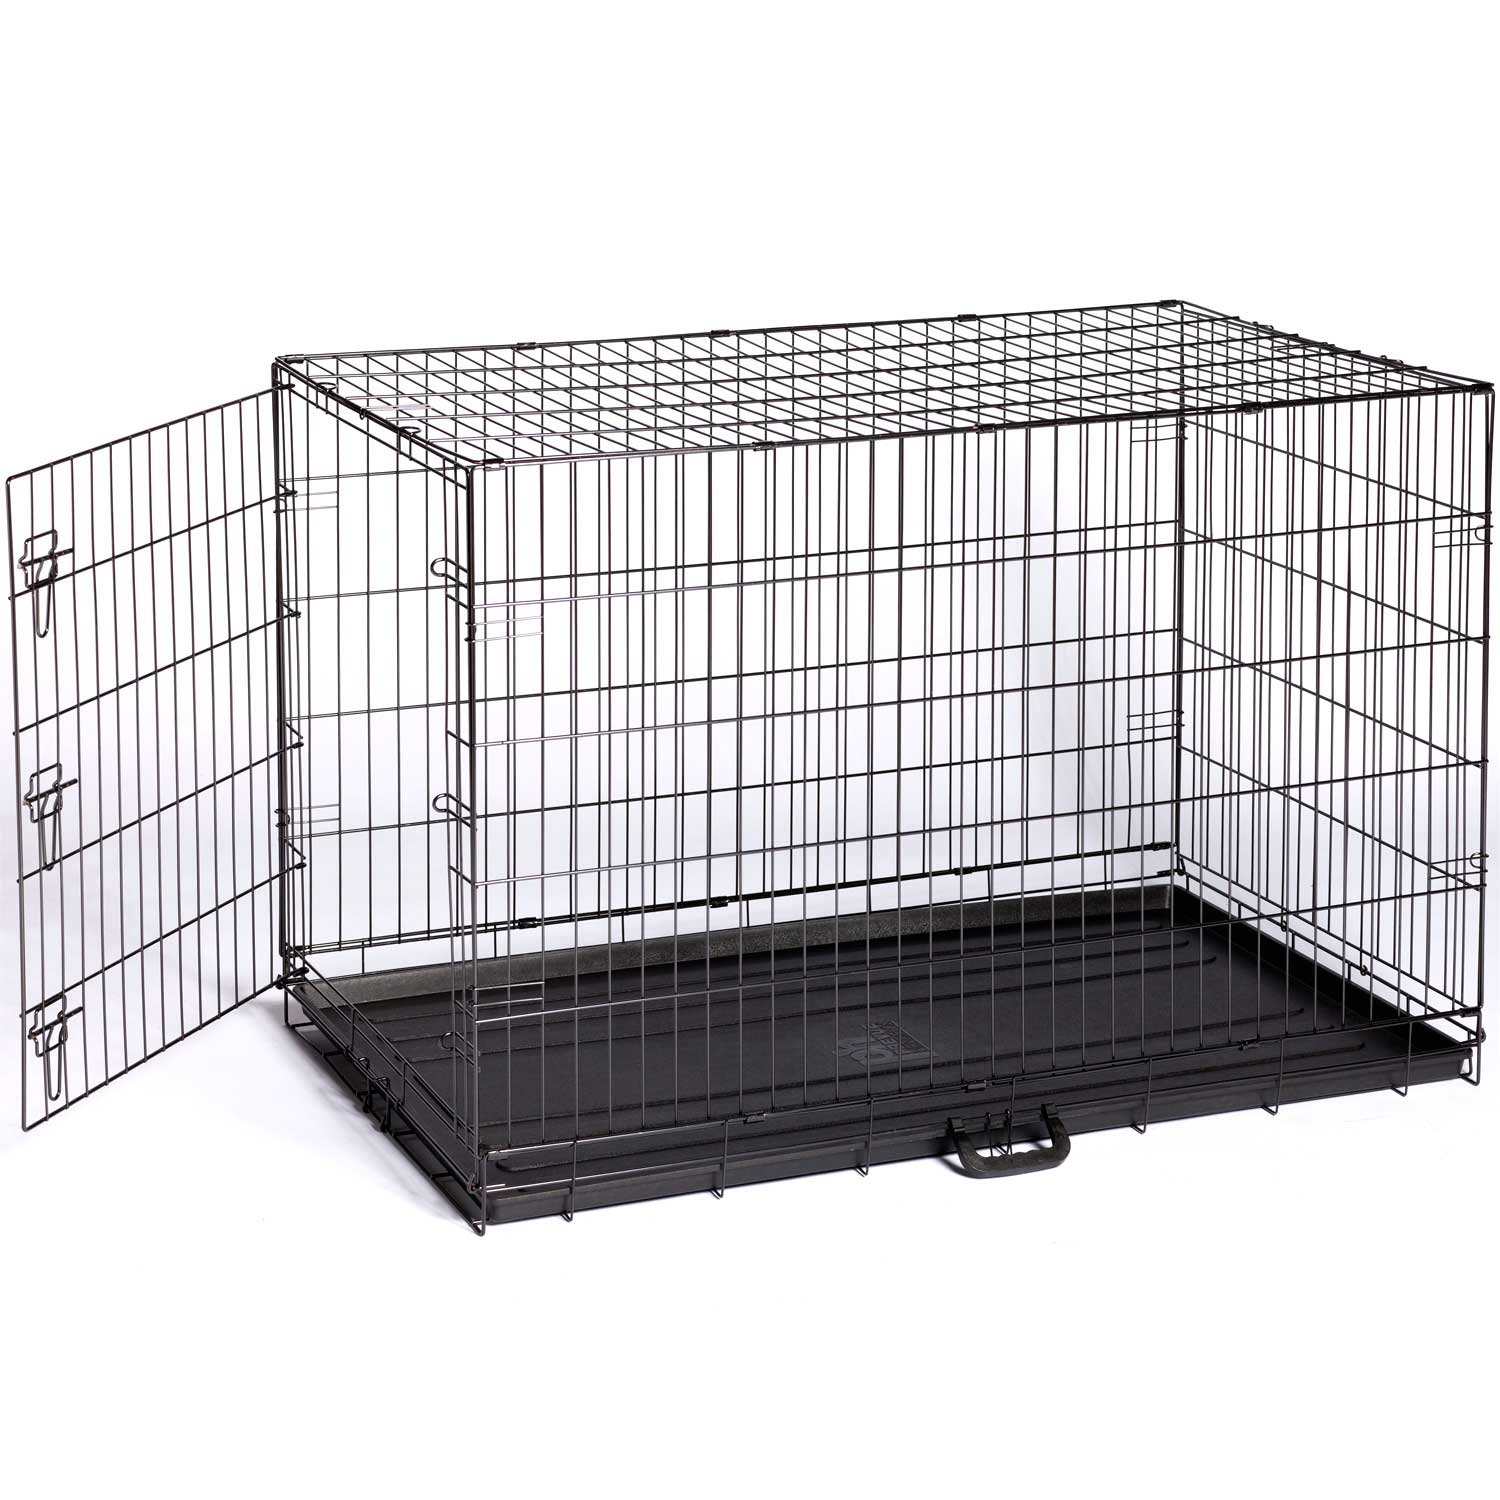 Amazon.com : Home On-The-Go Single Door Dog Crate E435, X-Large : Pet Crates  : Pet Supplies